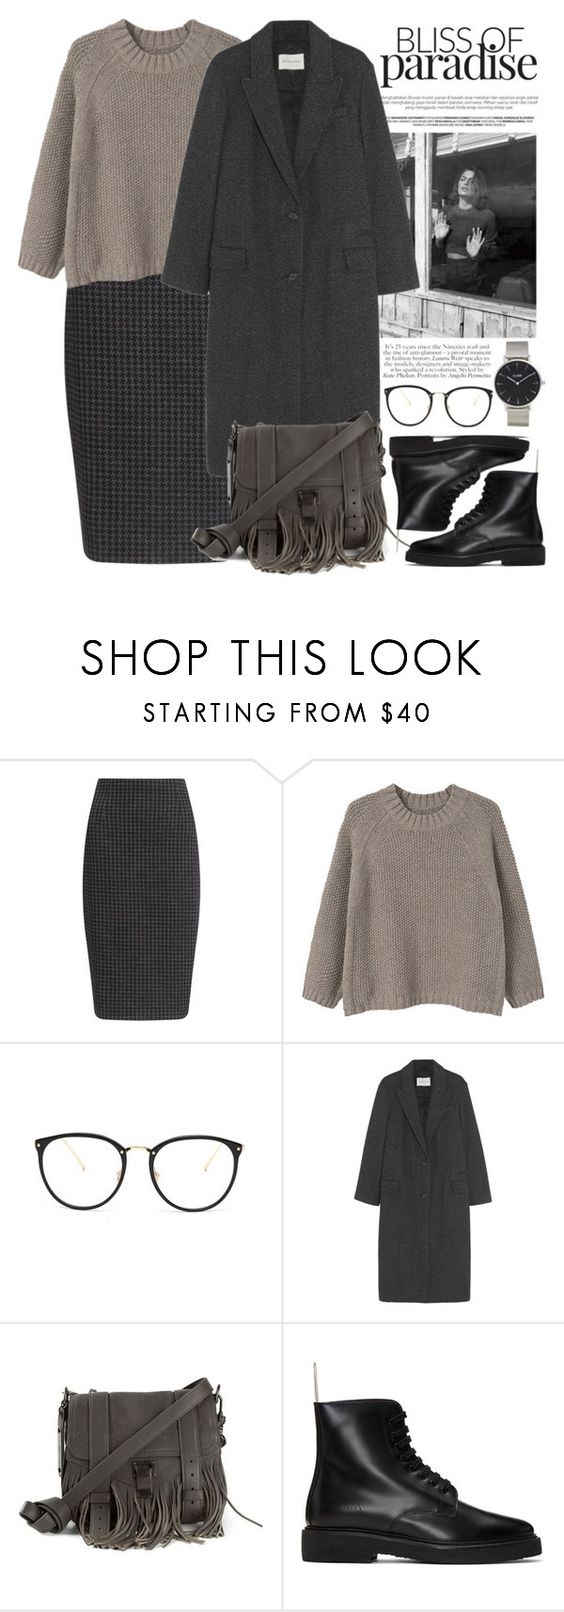 """""""Без названия #2677"""" by catelinota-a ❤ liked on Polyvore featuring John Lewis, MANGO, Linda Farrow, Étoile Isabel Marant, Proenza Schouler, Common Projects and CLUSE"""